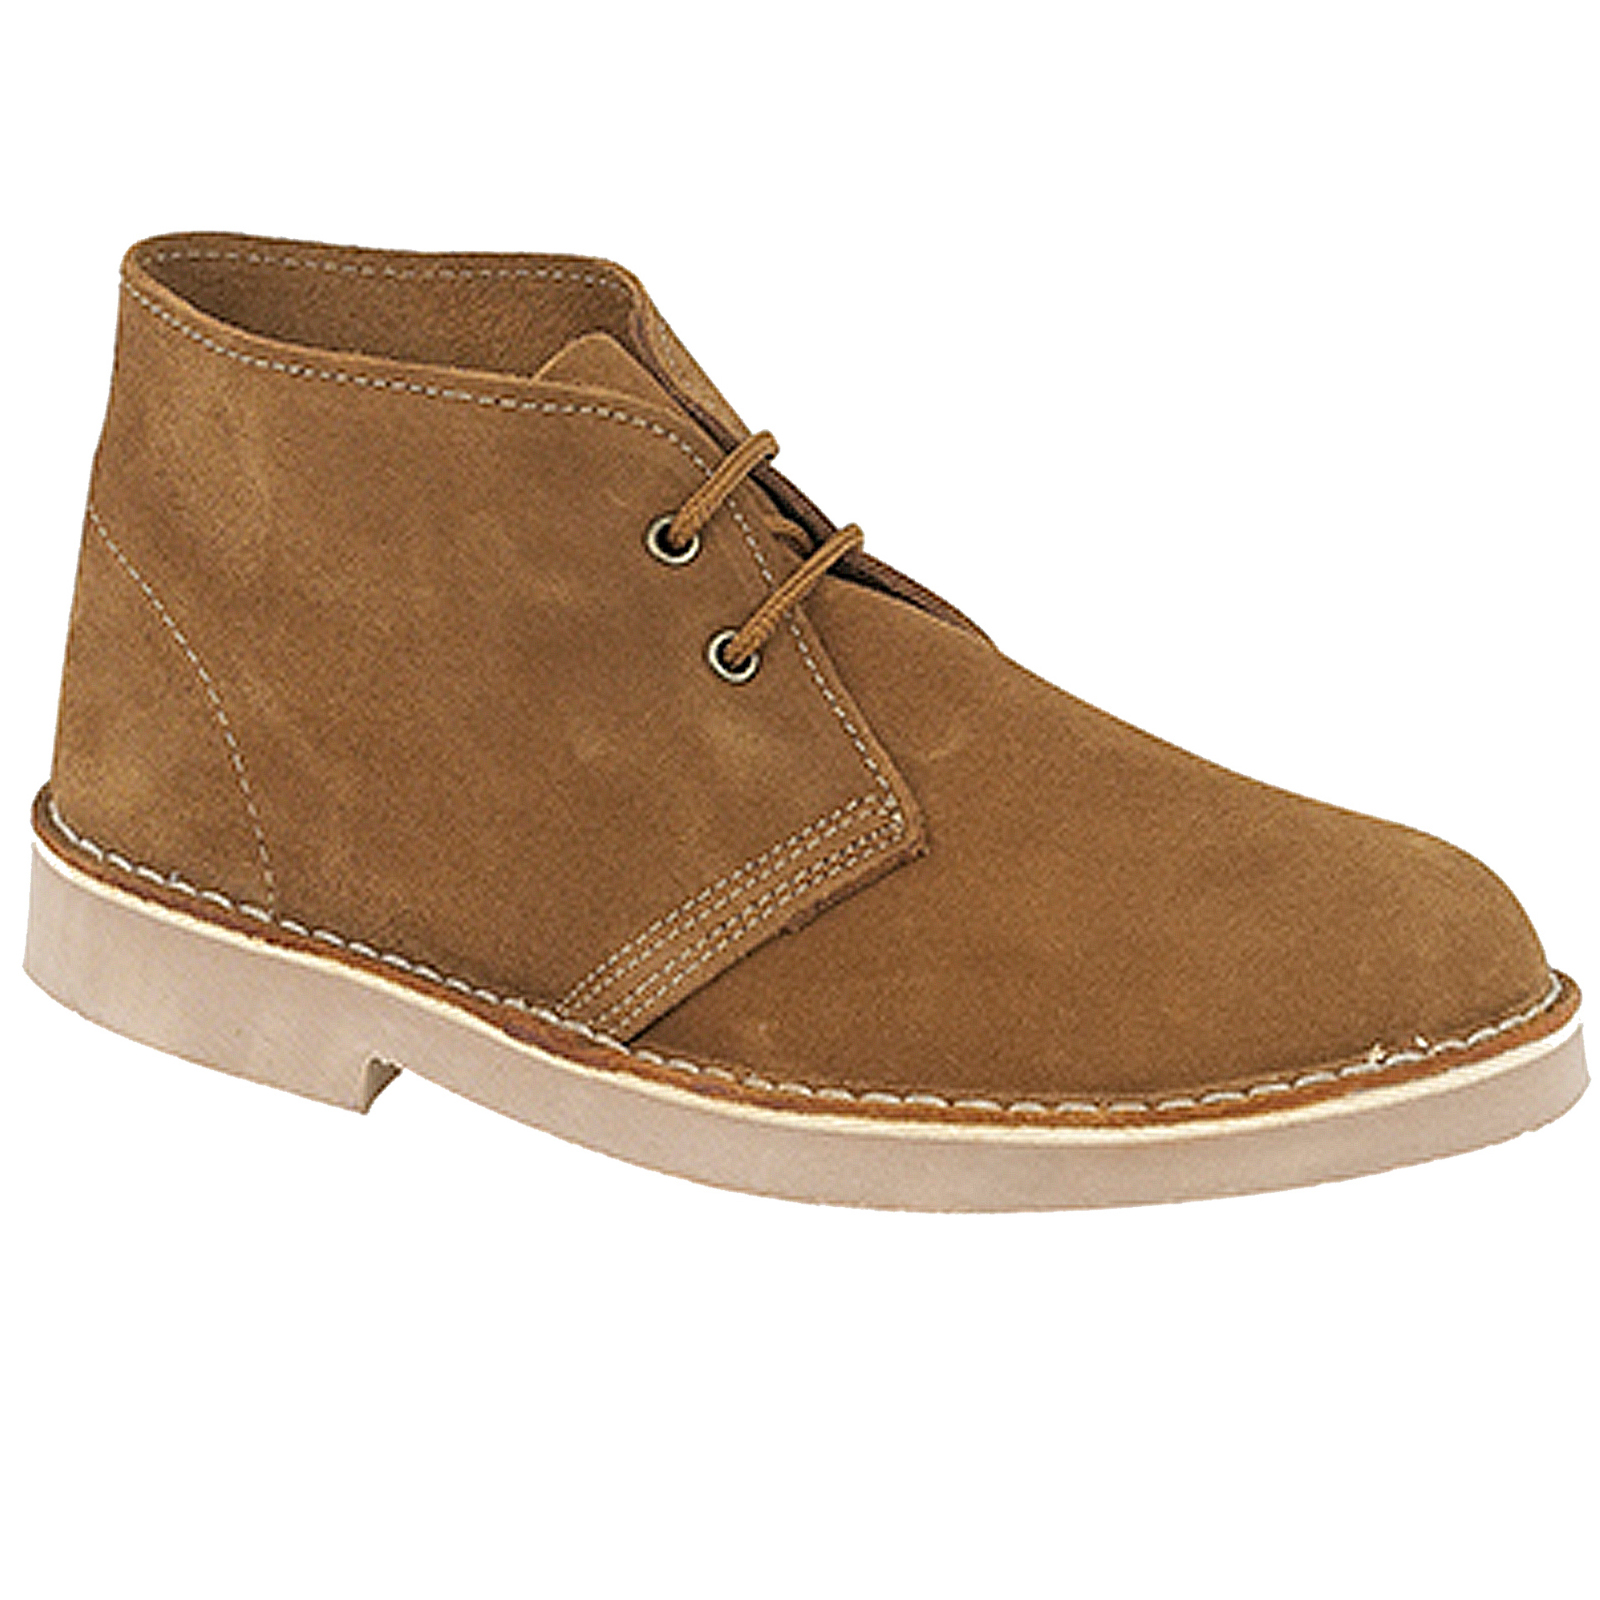 roamers desert boots mens womens casual lace up real suede leather ankle shoes ebay. Black Bedroom Furniture Sets. Home Design Ideas